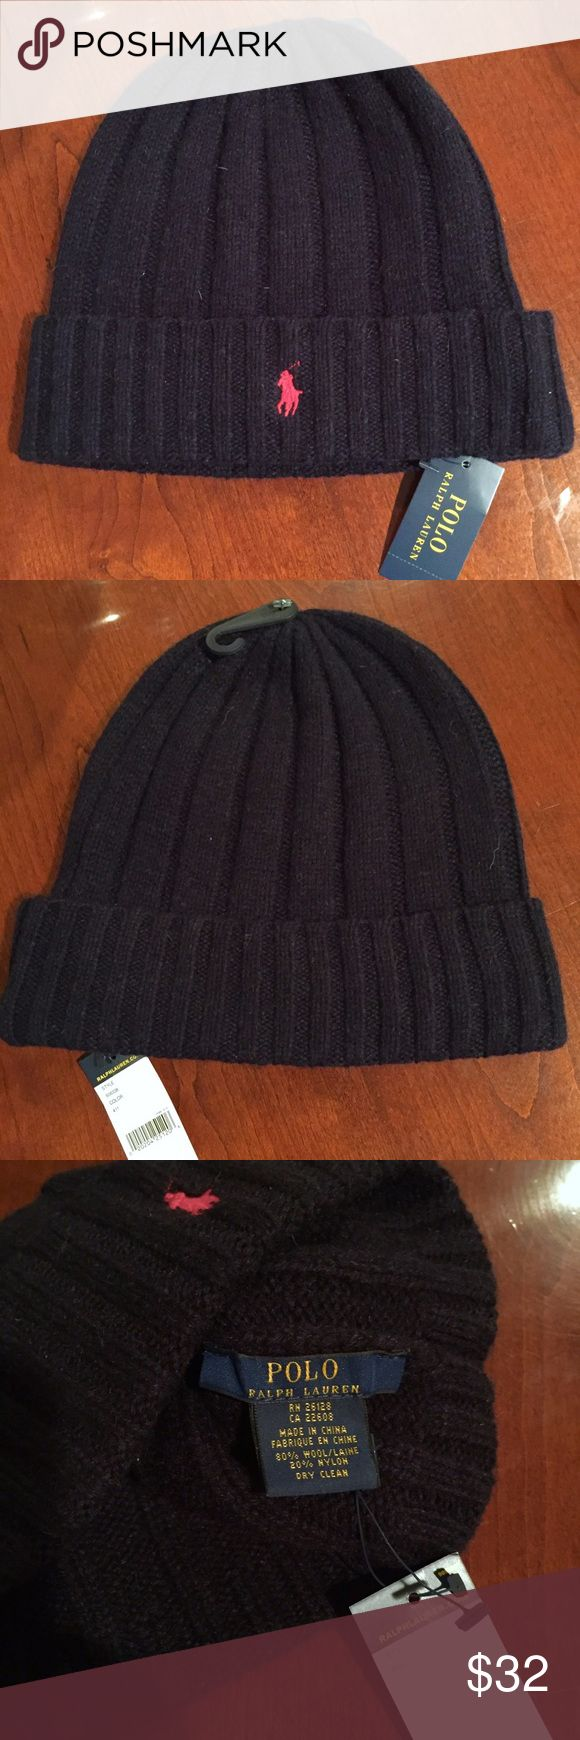 NWT - Men's POLO Beanie (Navy) NWT - Authentic Ralph Lauren POLO Beanie - Navy Blue with Red Polo emblem - 80% Wool, 20% Nylon *Price is Firm* Polo by Ralph Lauren Accessories Hats